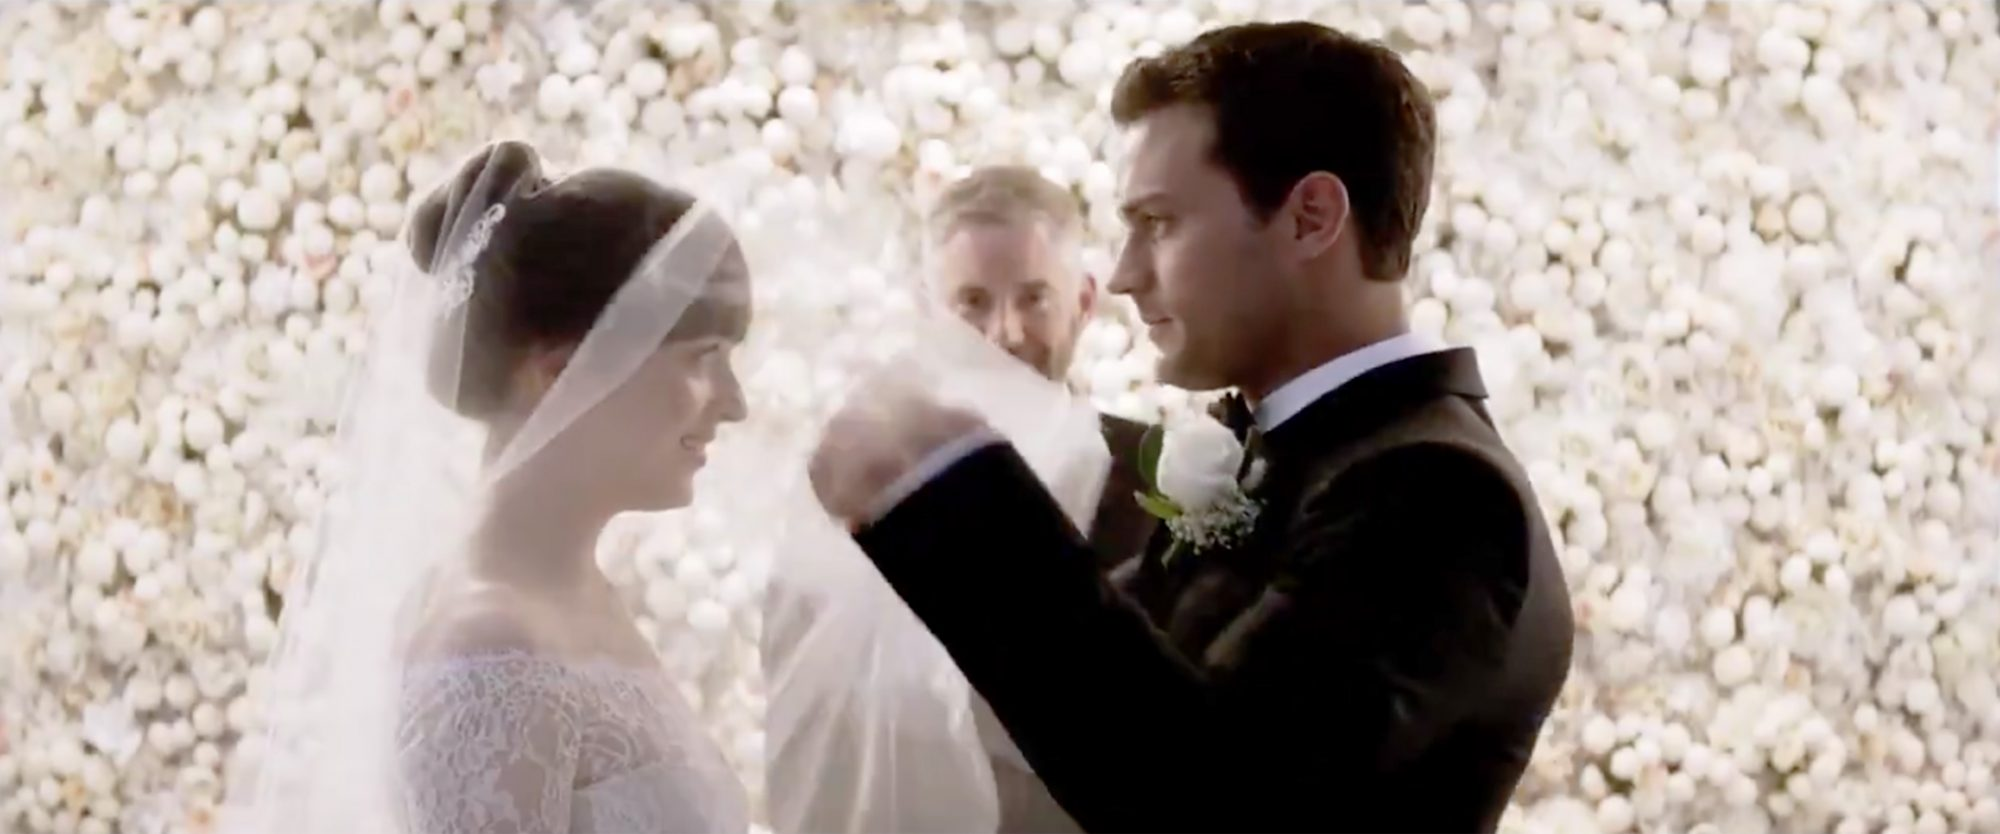 Fifty Shades Freed Trailer screen grab